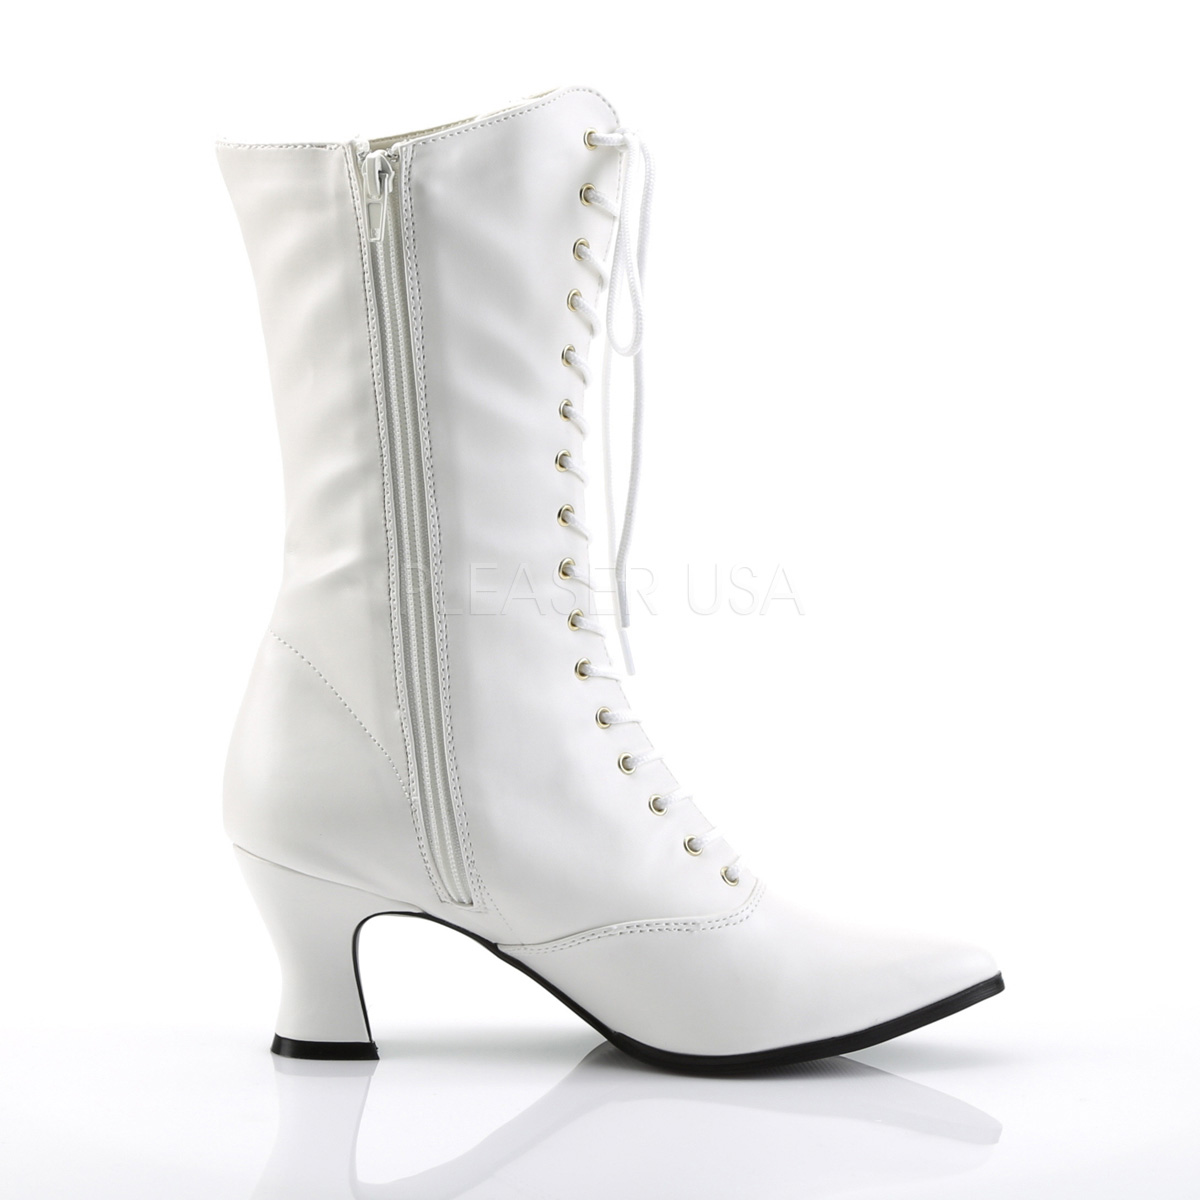 Funtasma VICTORIAN-120 ショートブーツ 2 3/4inch Heel Front Lace Up Mid Calf Boot w/Inner Side Zip◆取り寄せ